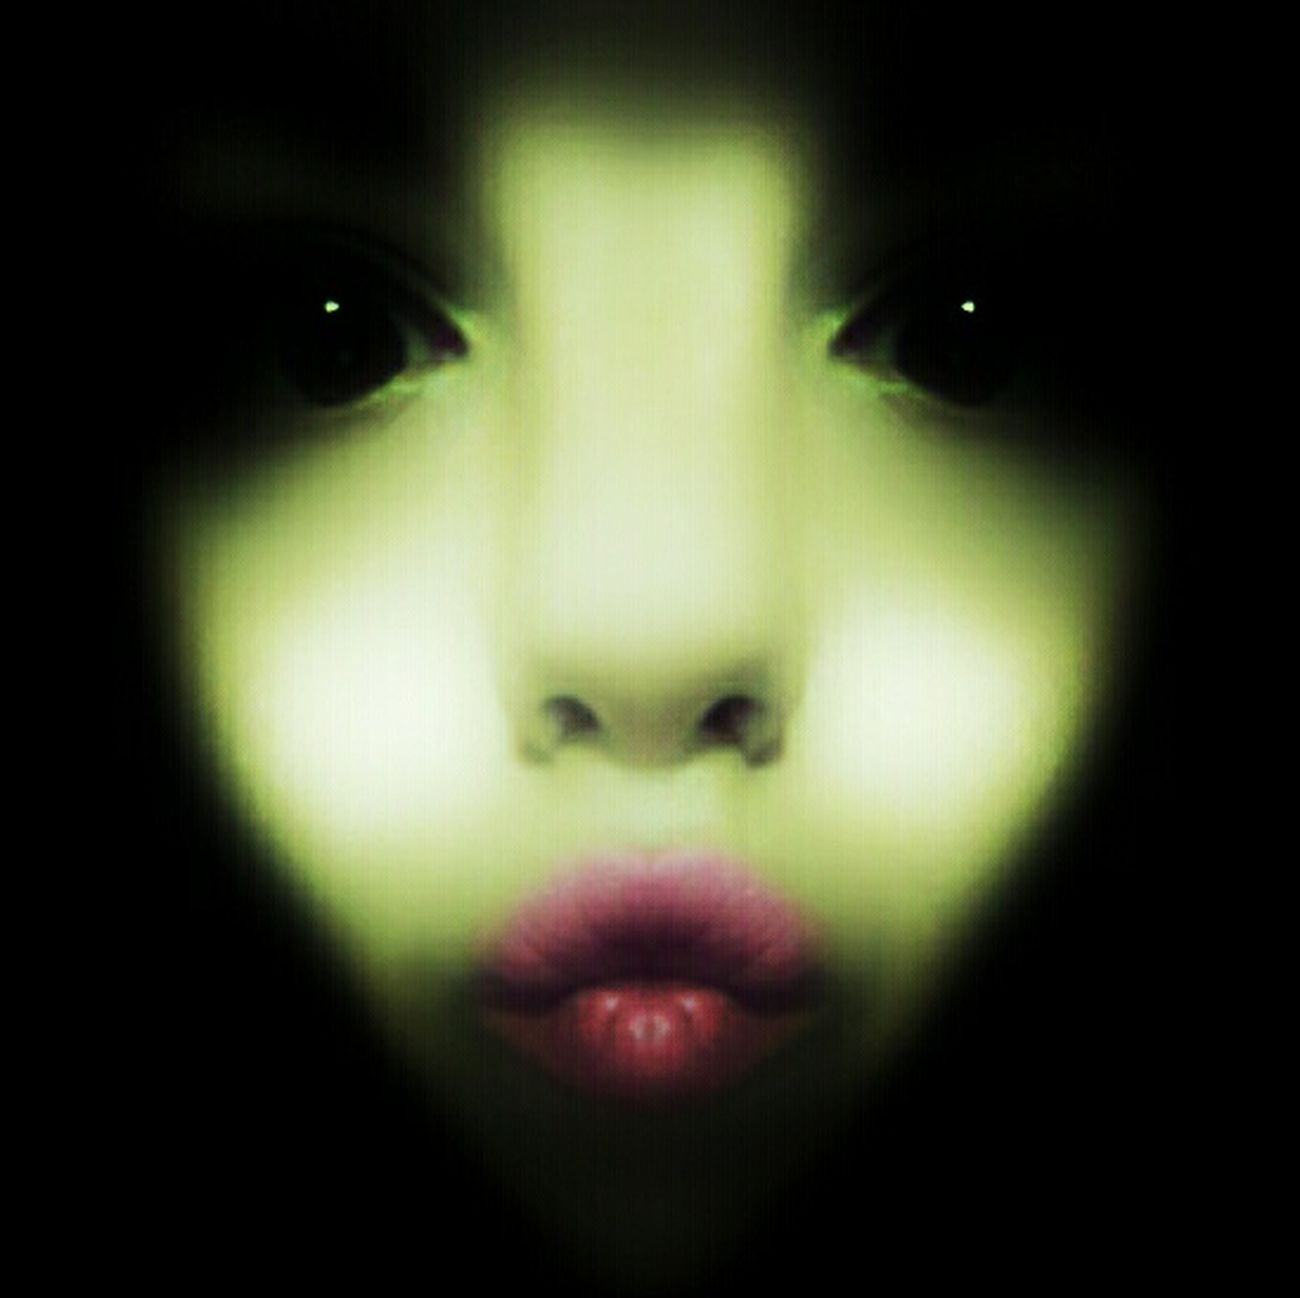 Alian Alien Green Cosmos Galaxy Galaxy Girl Woman Autoportrait Me My Self Selfie ✌ Self Portrait Mars Eye Mouth Face Abstract Abstract Photography Portrait Looking At Camera Front View Human Body Part Human Face Adult One Woman Only